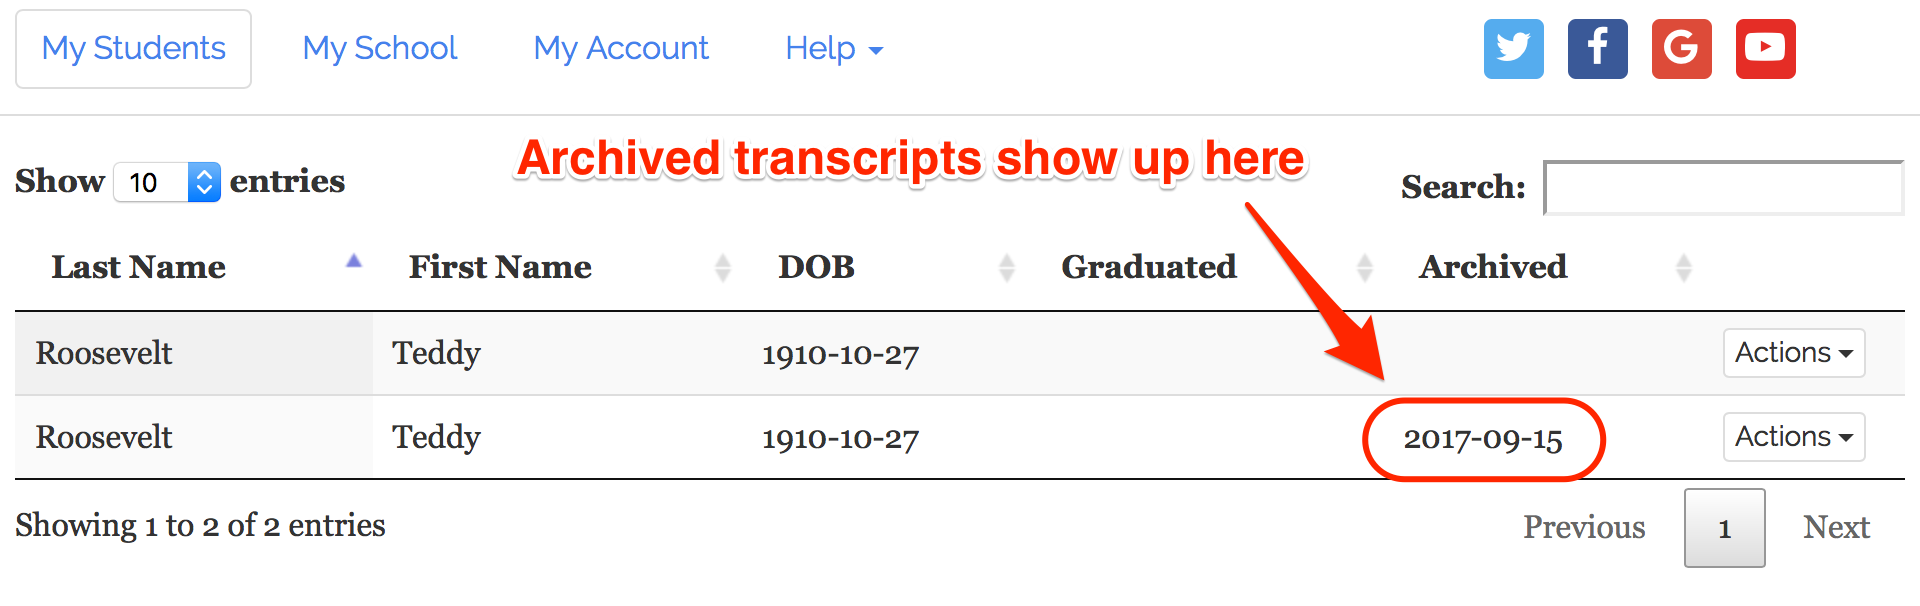 Where to find archived transcripts